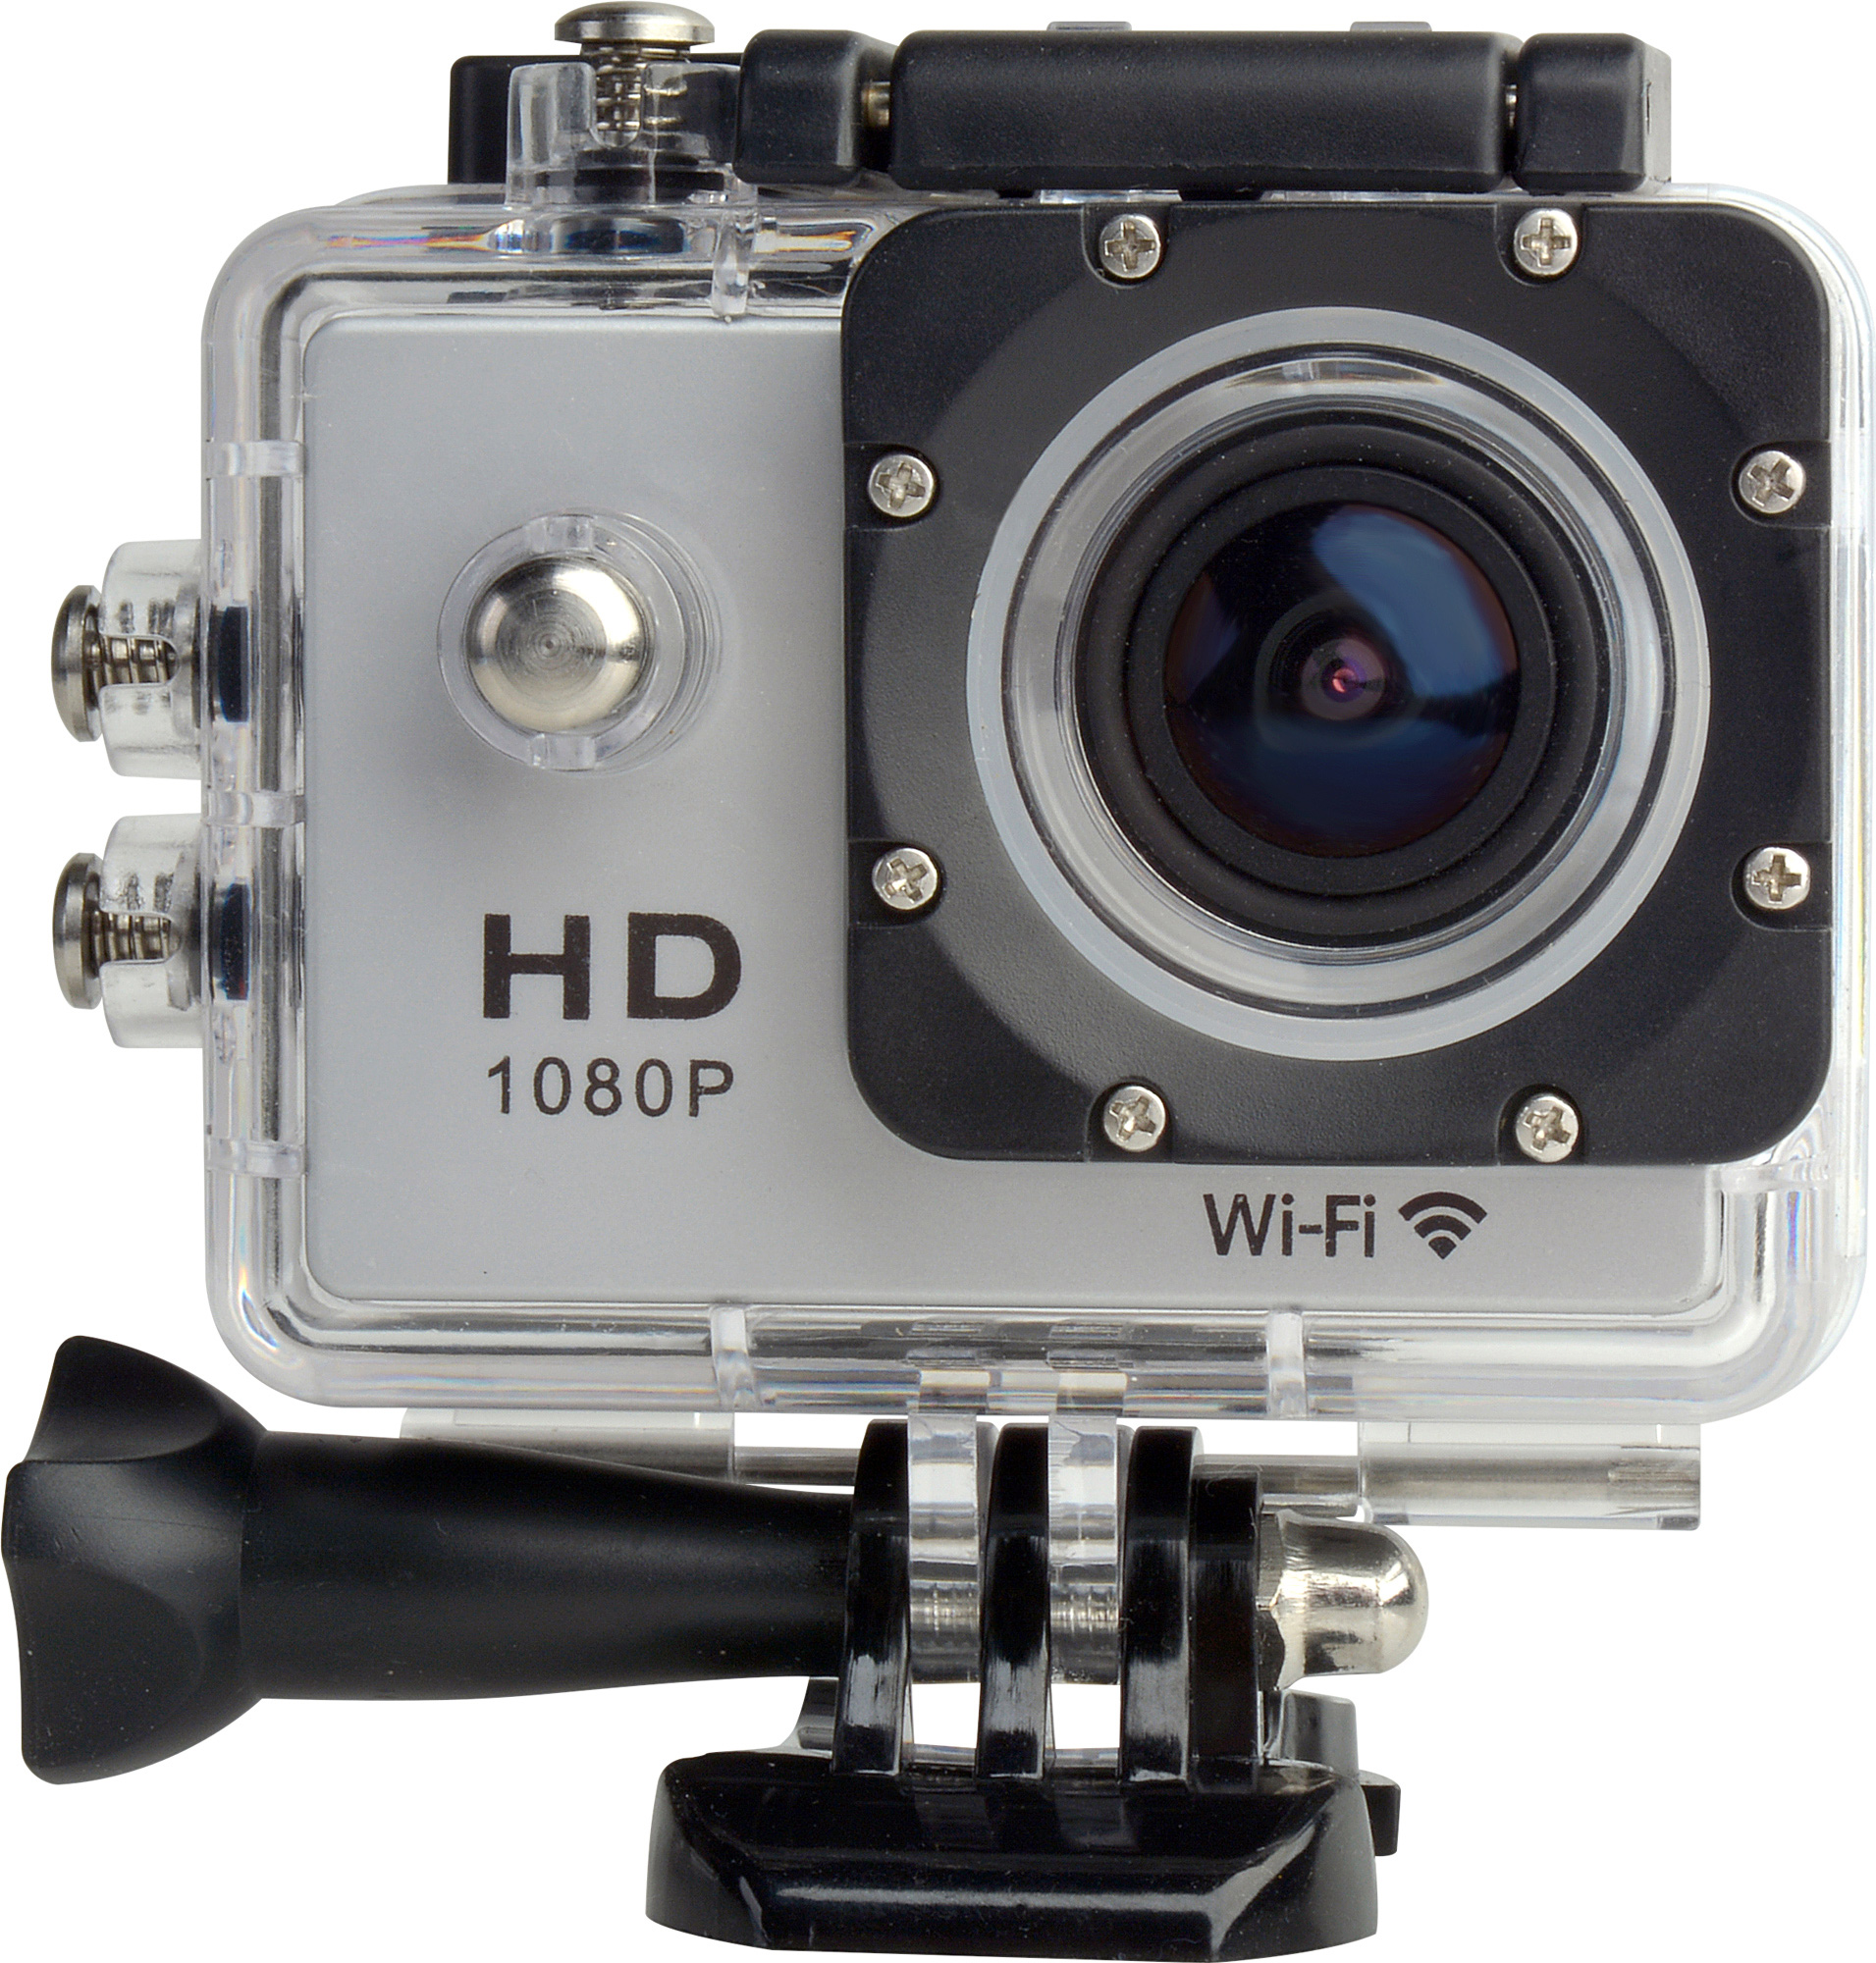 Delvcam SPORTSCAM-1 1080P Action Sports POV Camera with Wi-Fi and ...